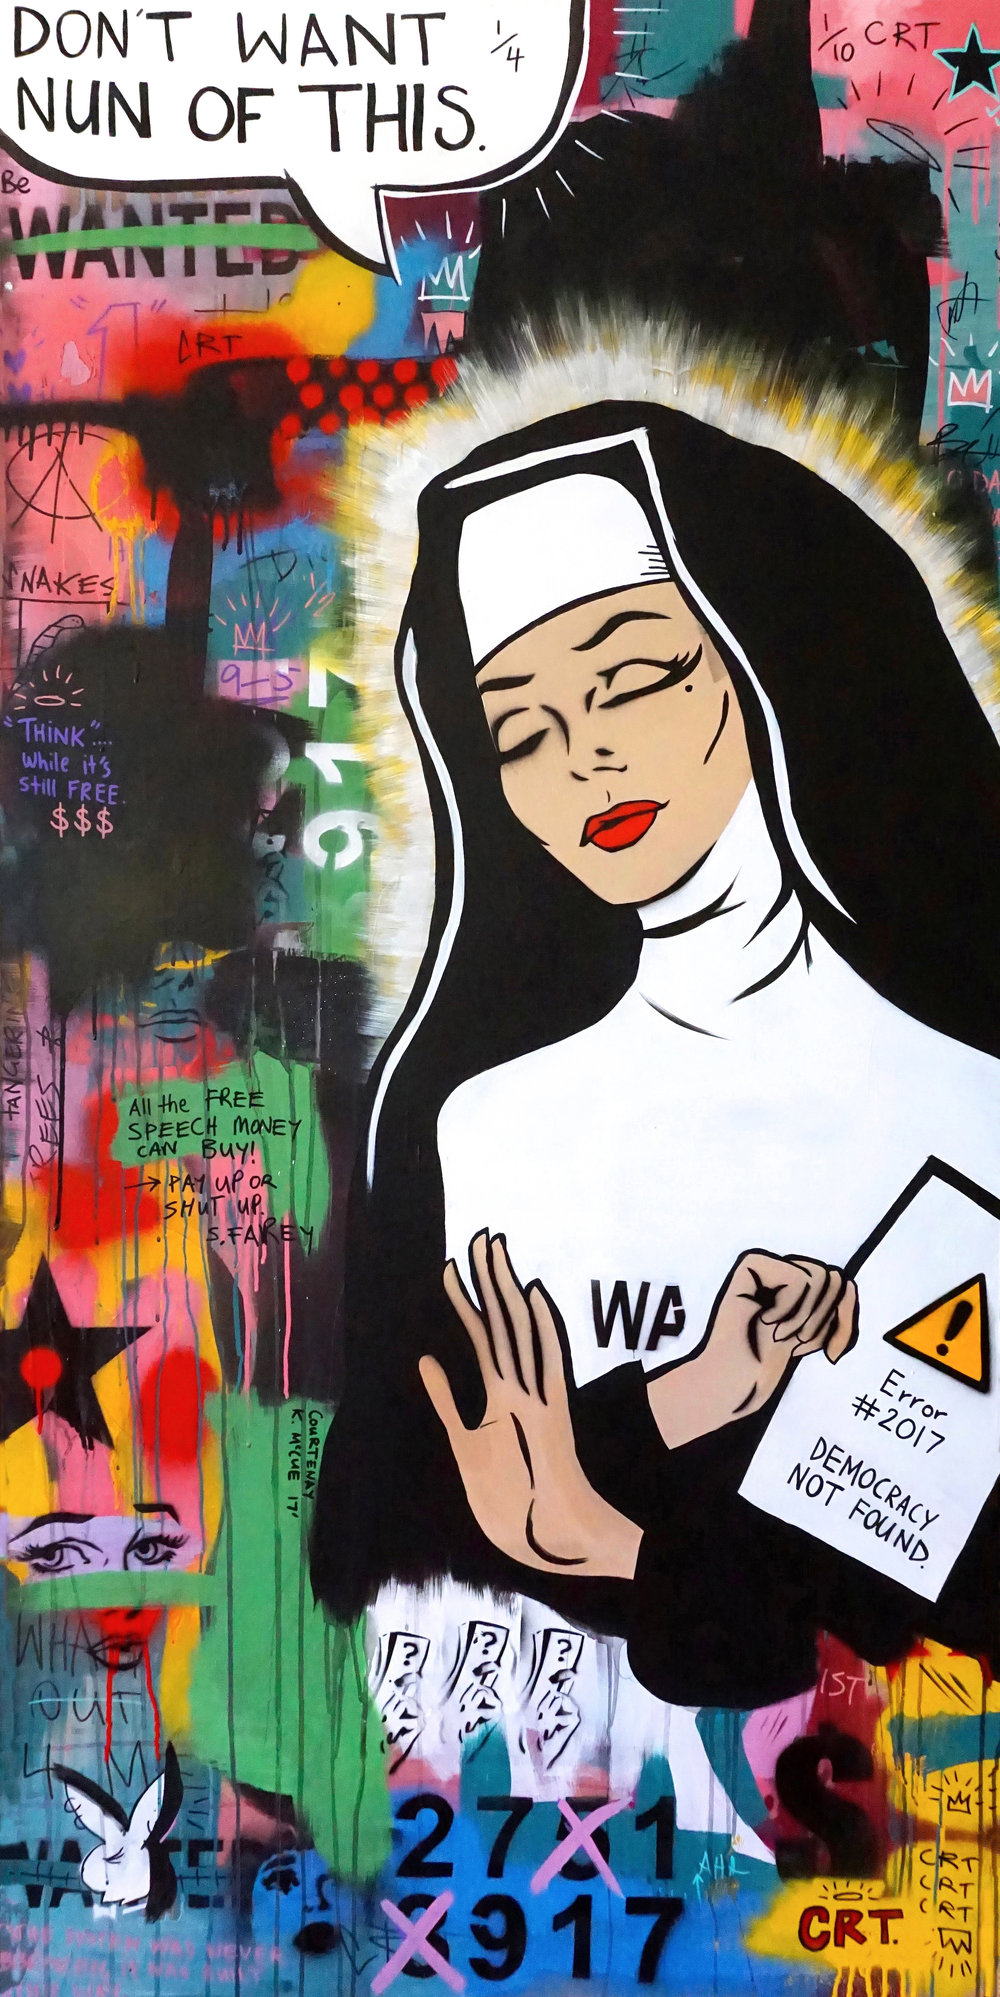 """""""DON'T WANT NUN OF THIS""""  182cm x 92cm Mixed Media on Board  Sold  2017"""